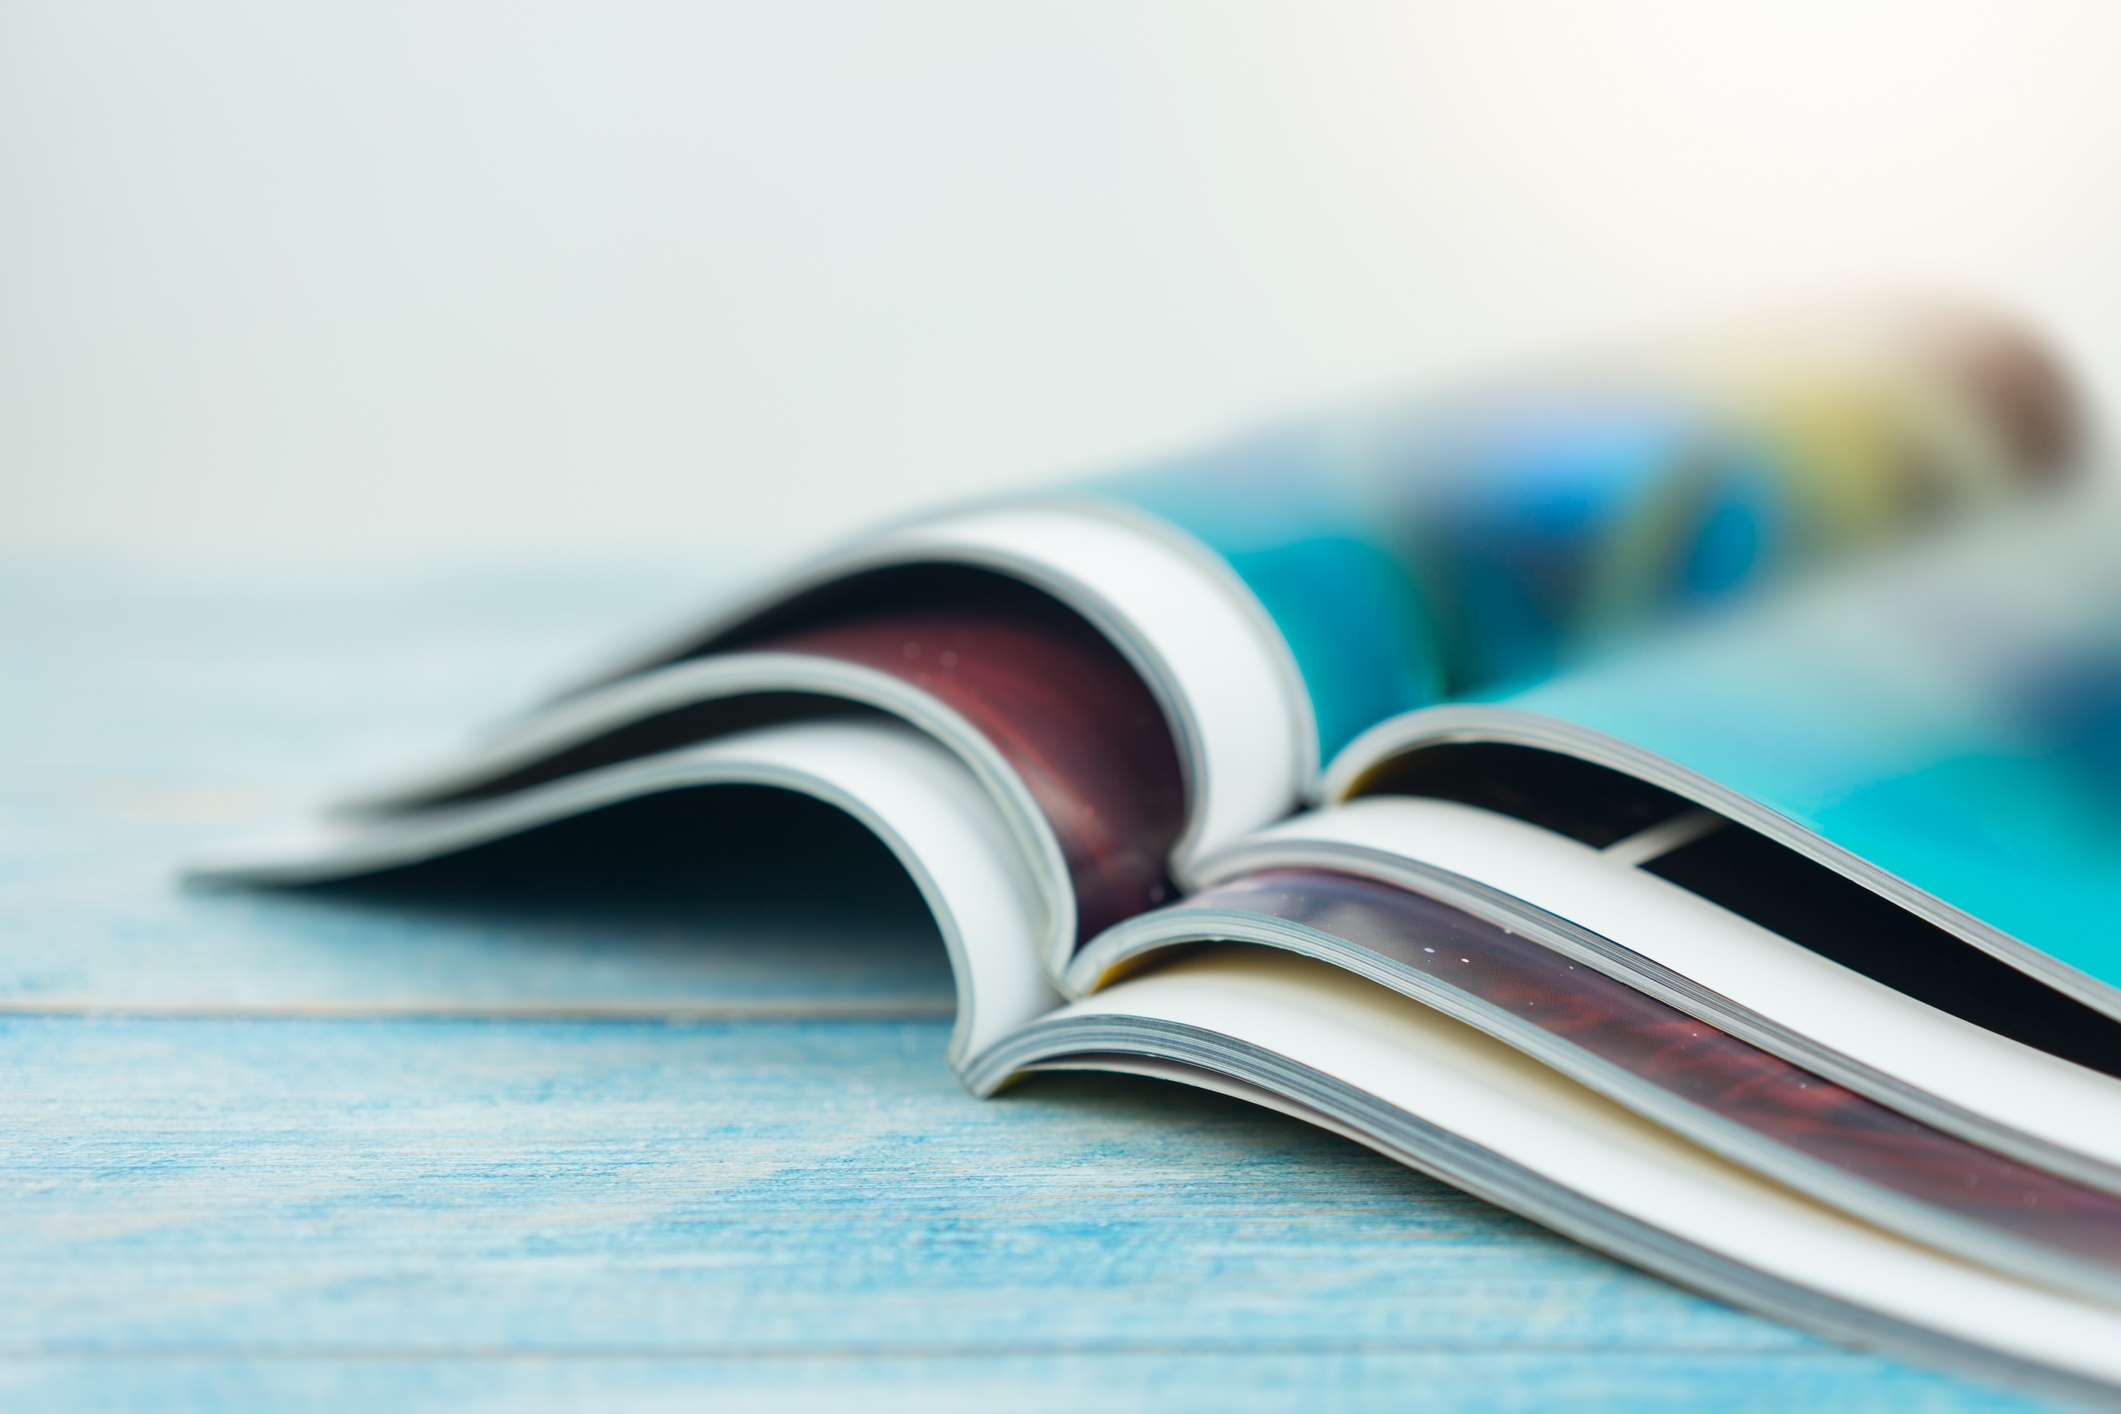 How to Optimize Your Print Marketing Strategy to Attract More Qualified Leads